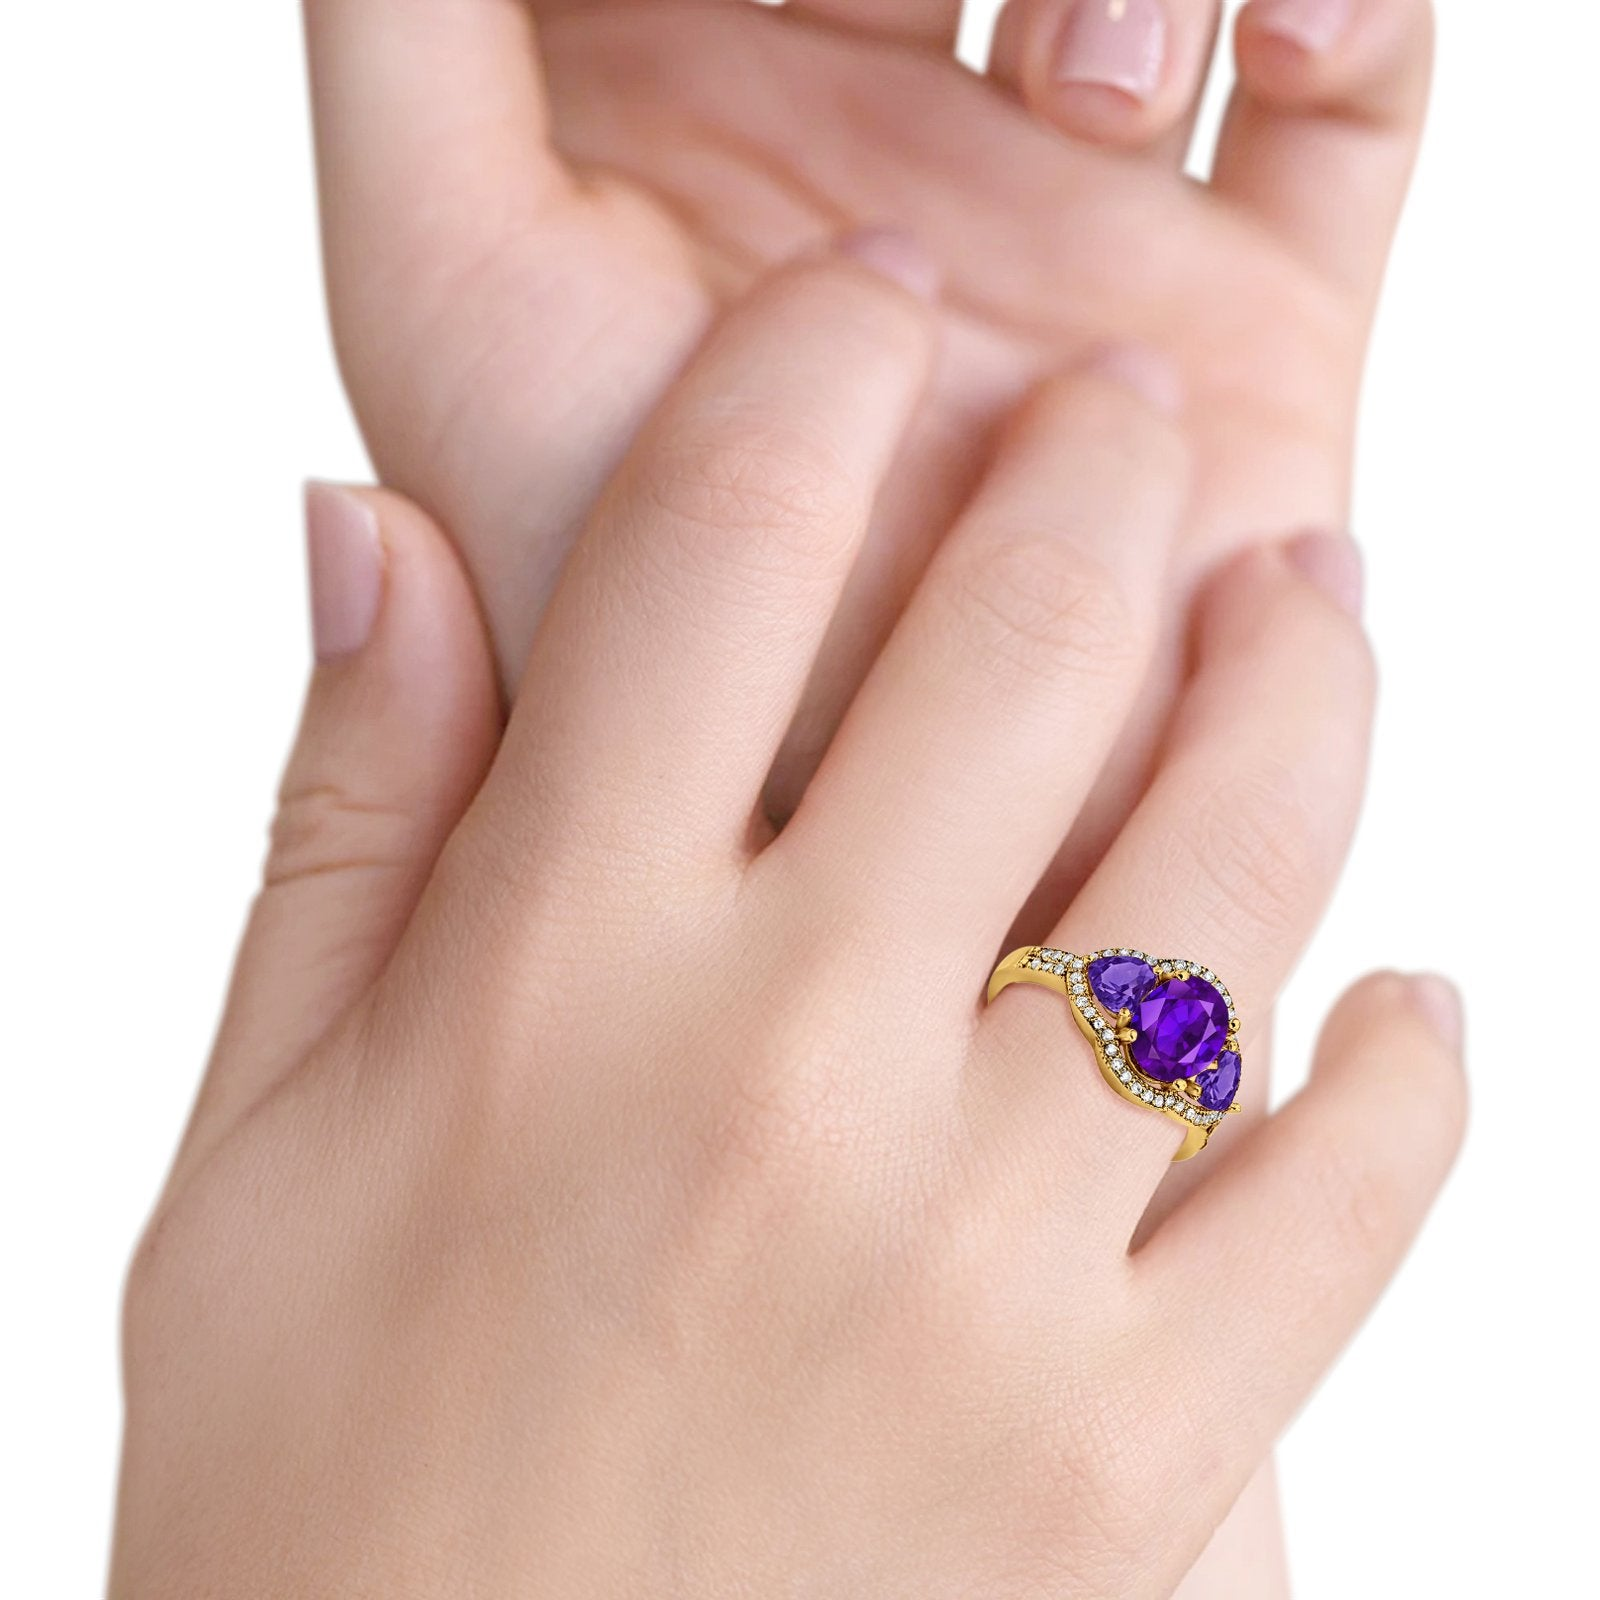 Halo Oval Simulated Cubic Zirconia Heart Amethyst CZ Ring 925 Sterling Silver